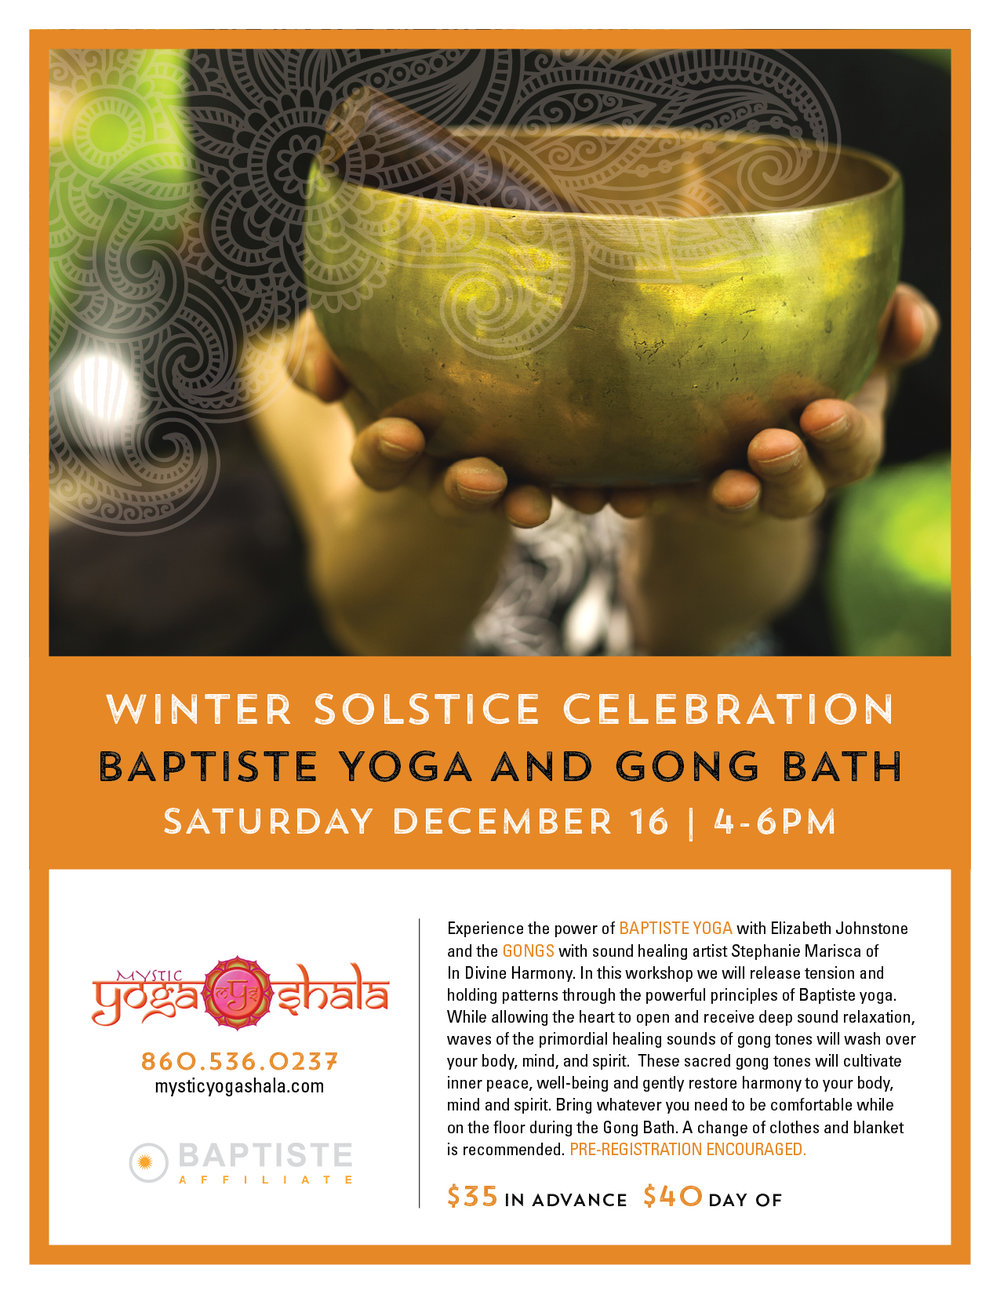 gongbath_flyer_winter_3.jpg